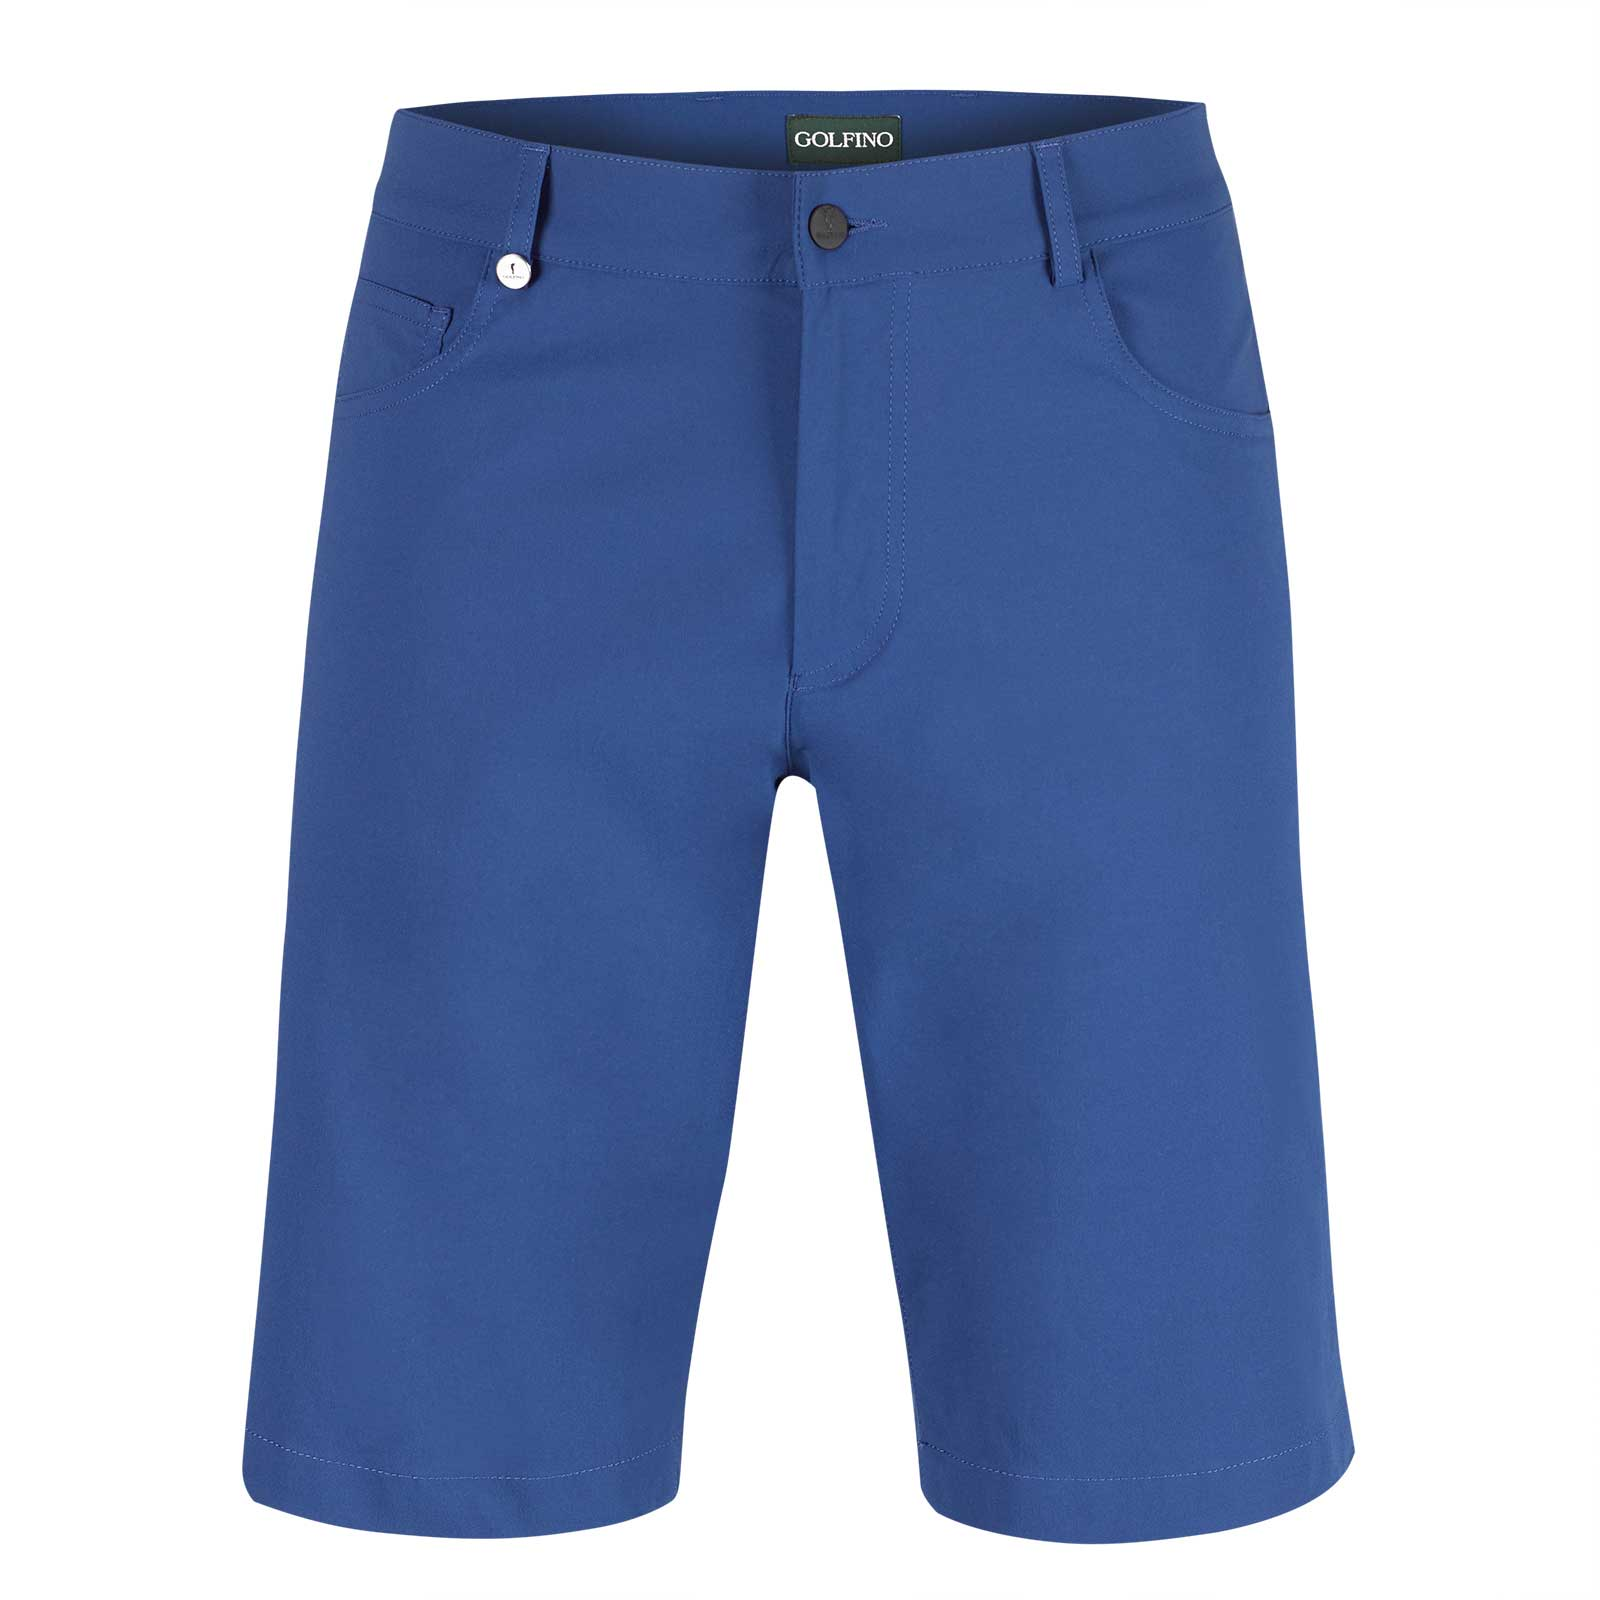 Men's 5-pocket Bermuda with Sofileta® UV protection